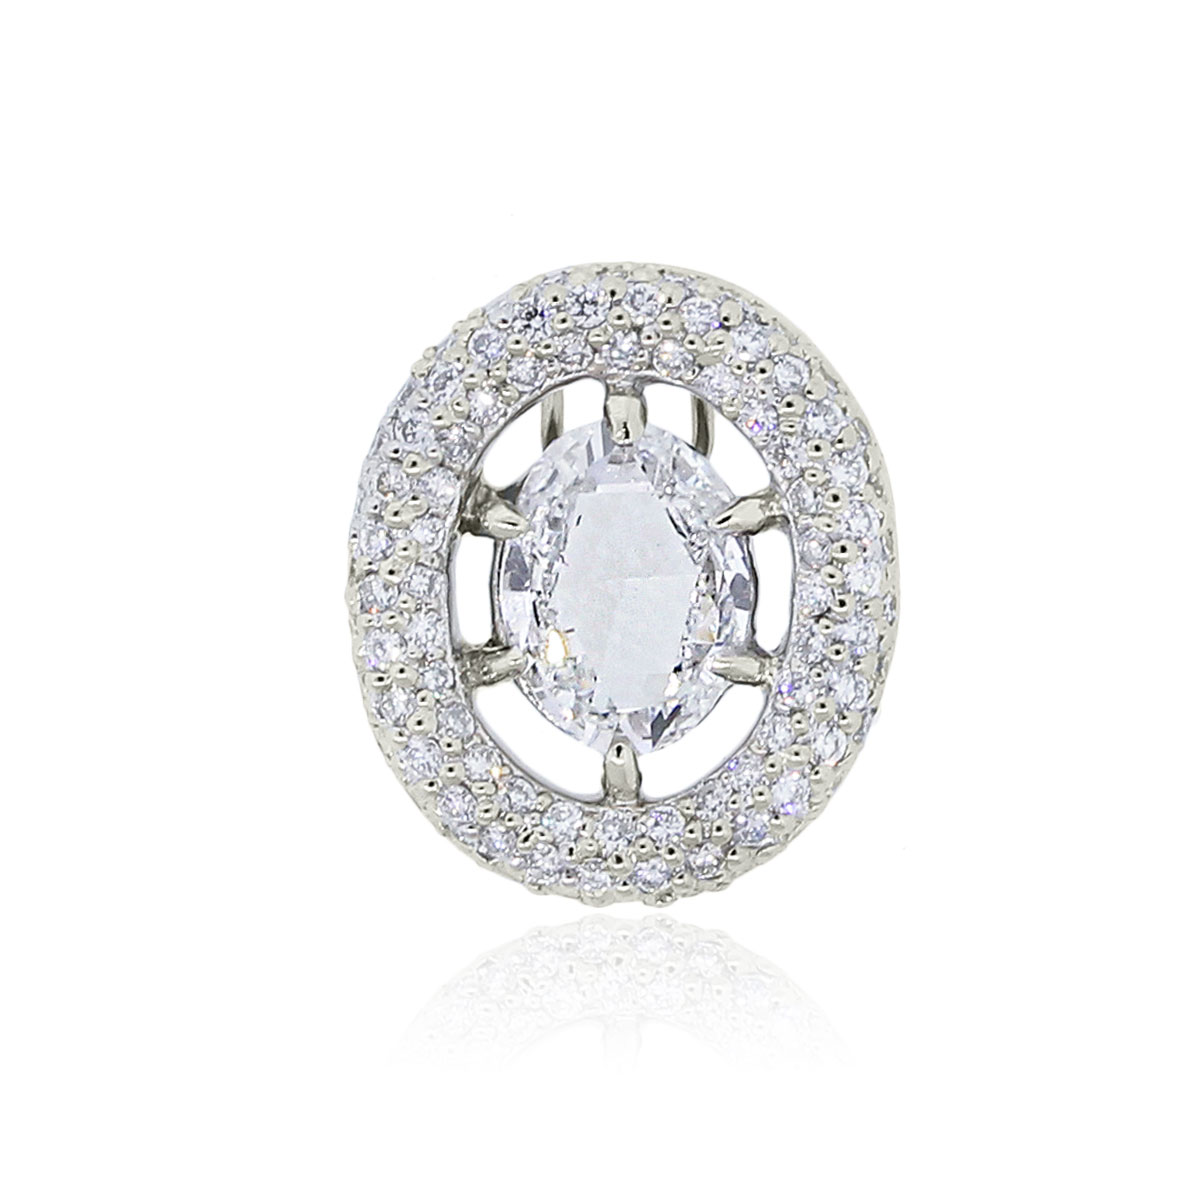 You are viewing this 18k White Gold 1.70CT Oval Diamond Slide Pendant!